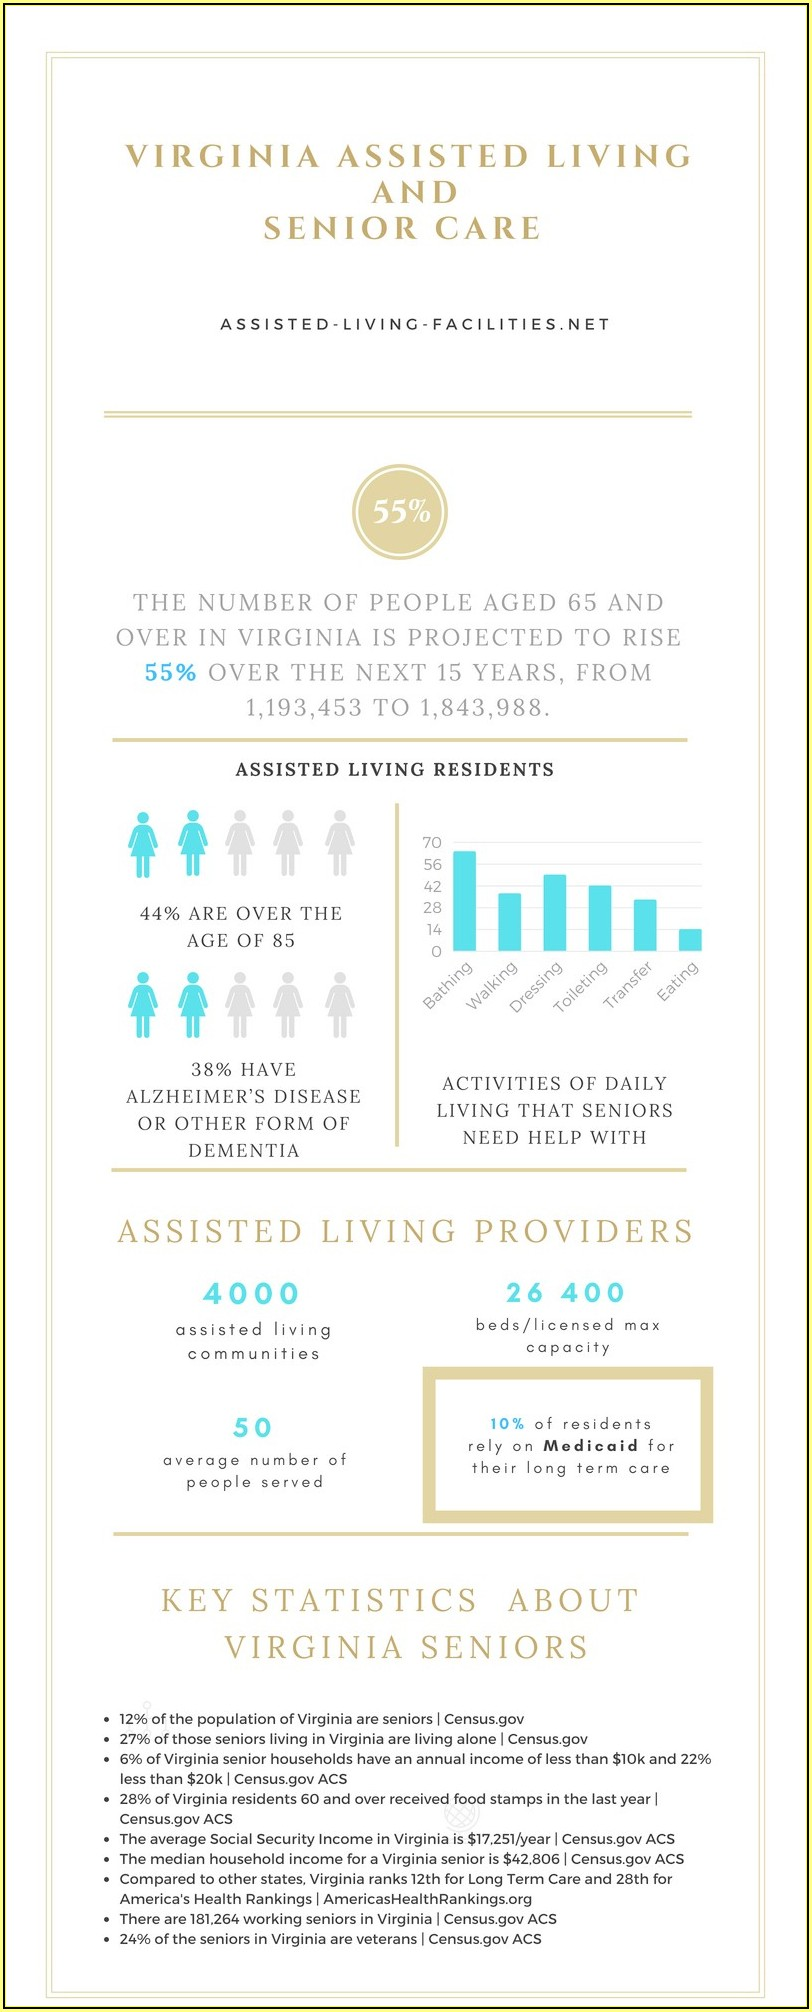 Virginia Assisted Living Forms